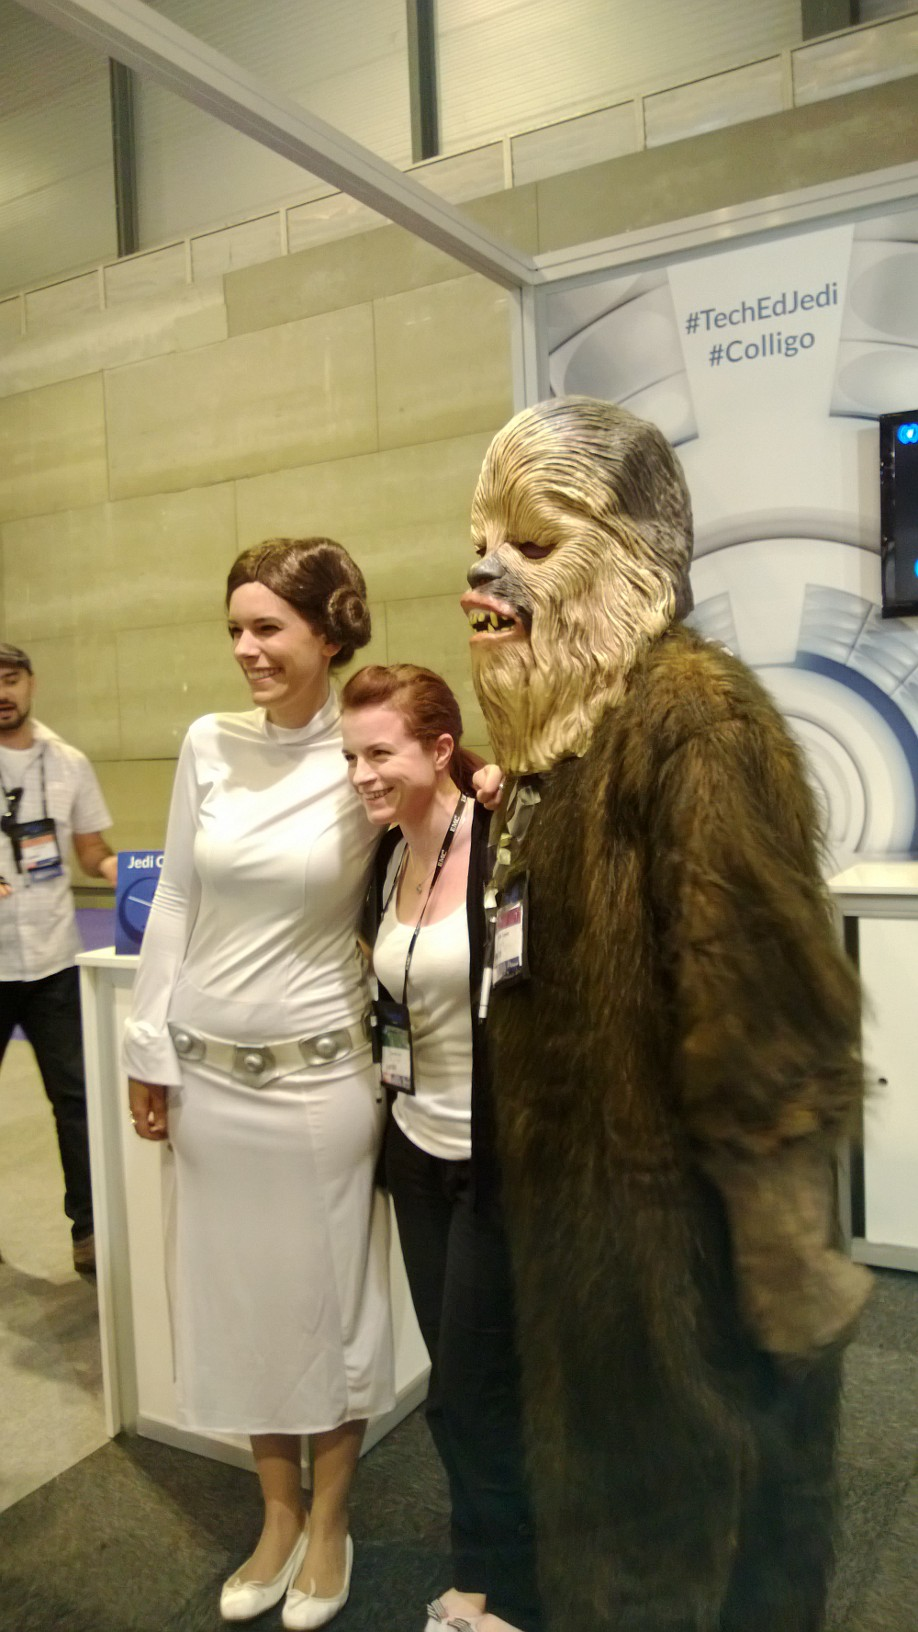 Princess Leia and Chewie posing for photos at TechEd Europe 2013